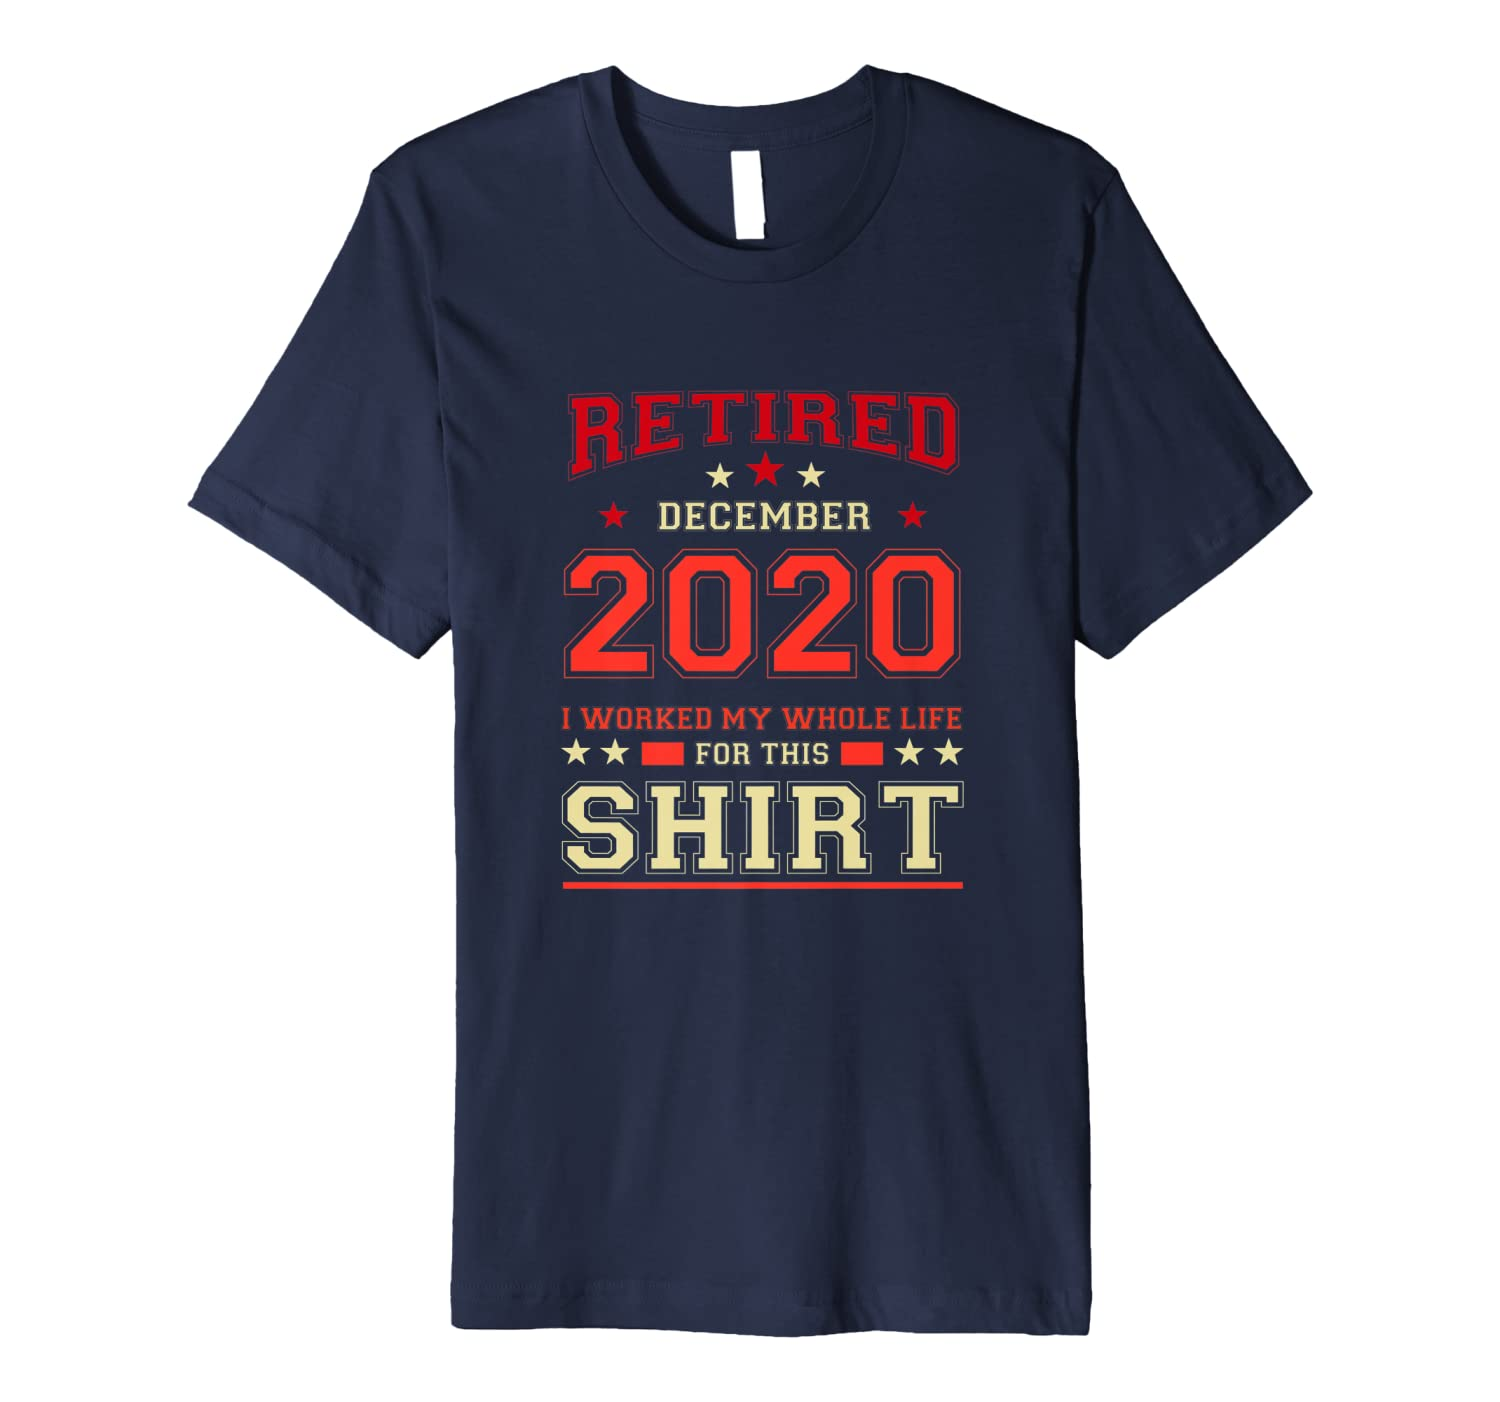 RETIRED DEC 2020 I WORKED MY WHOLE LIFE FOR THIS RETIREMENT Premium T-Shirt-ANZ